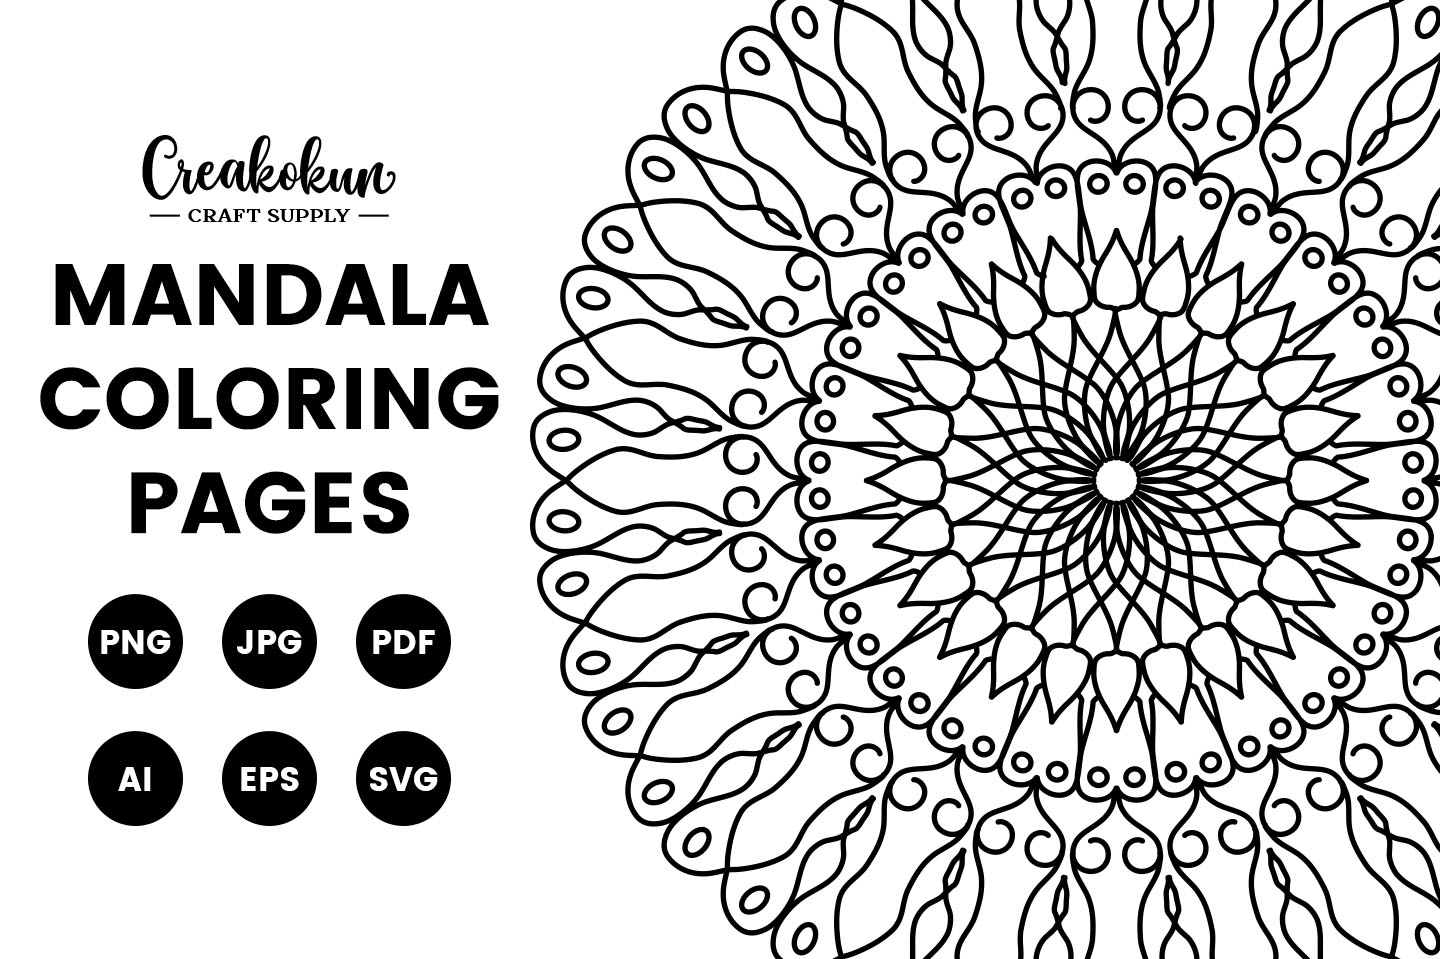 Download Free Mandala Illustration Coloring Pages Graphic By Creakokunstudio for Cricut Explore, Silhouette and other cutting machines.